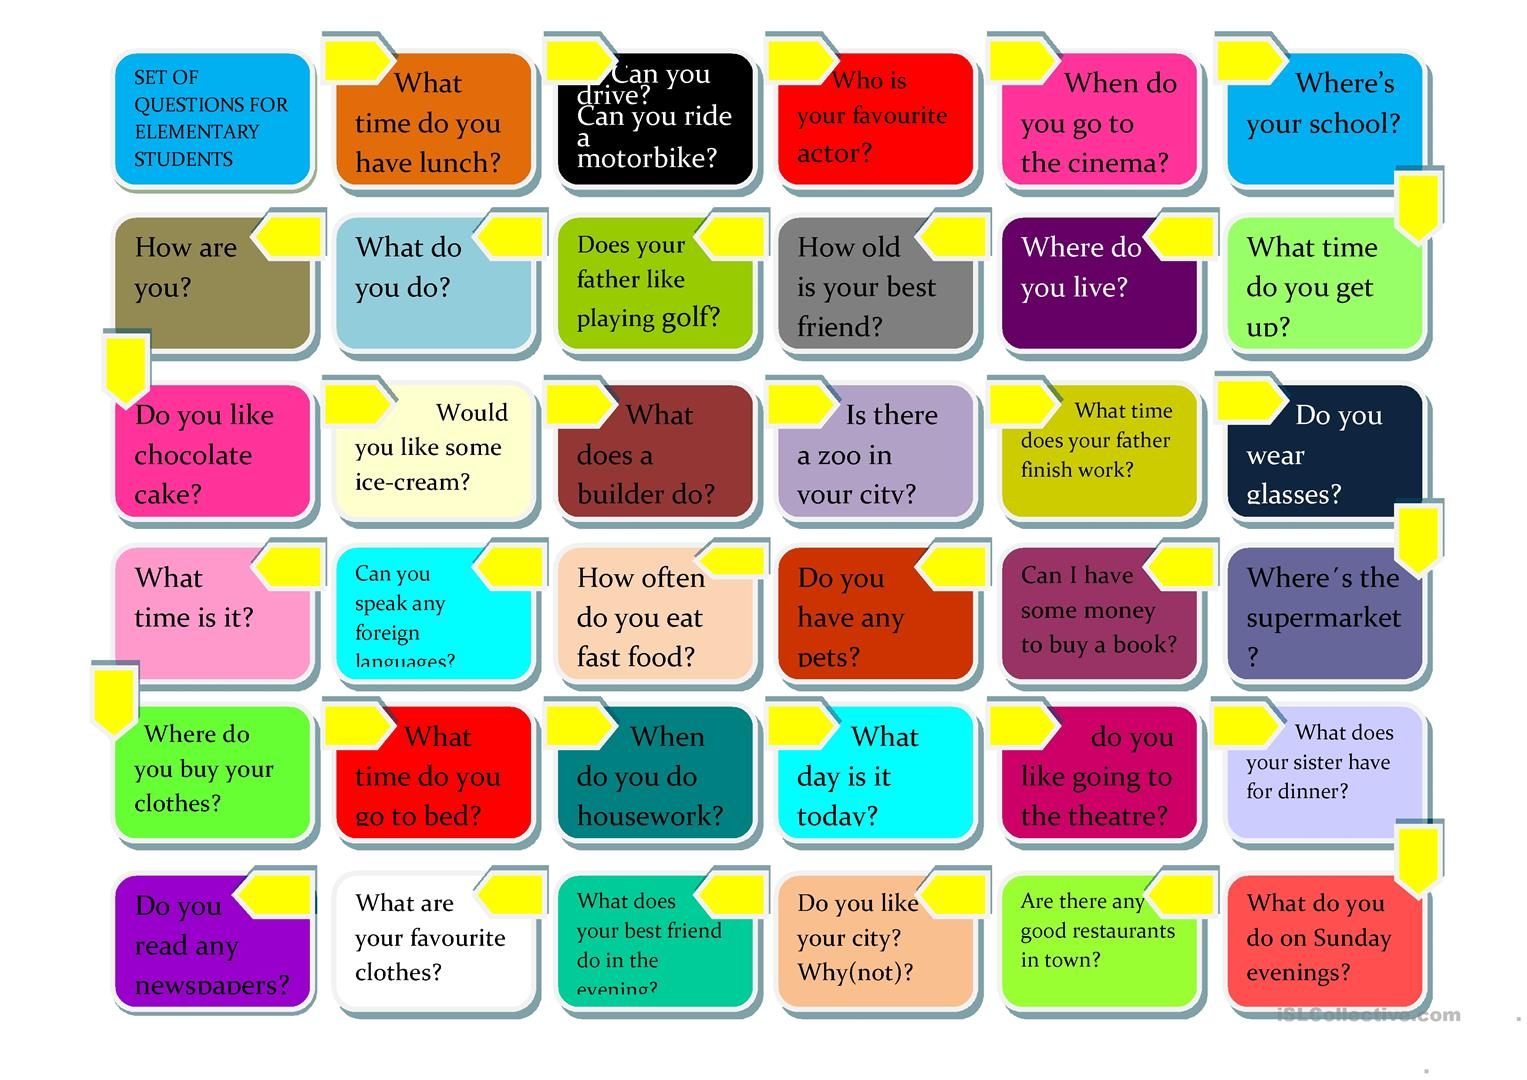 Set Of Questions For Elementary Students